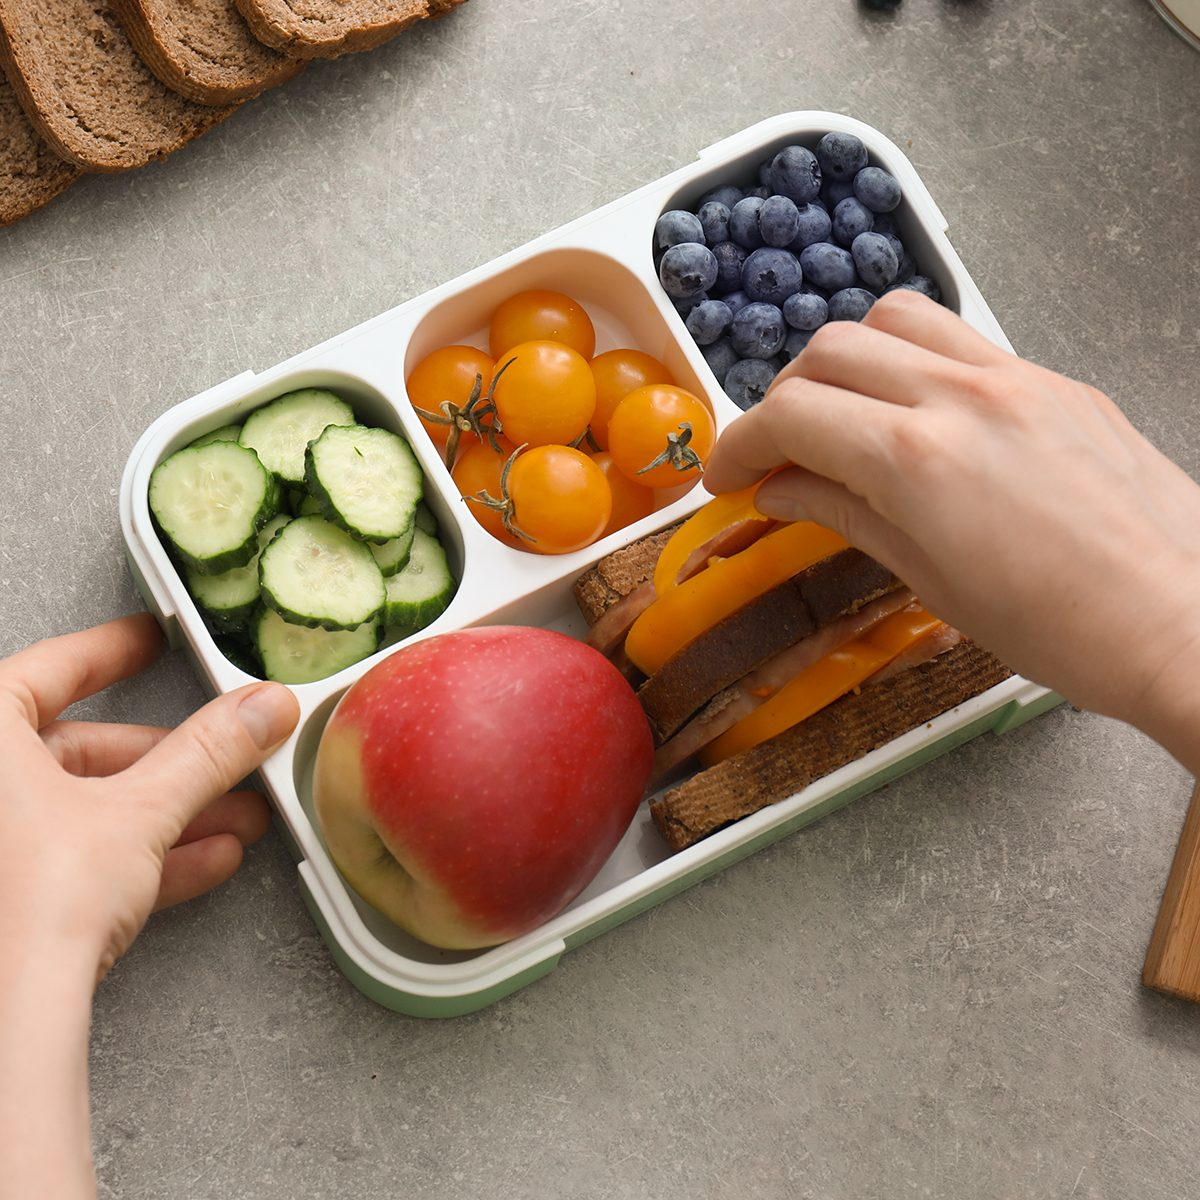 Mother putting food for schoolchild in lunch box on table